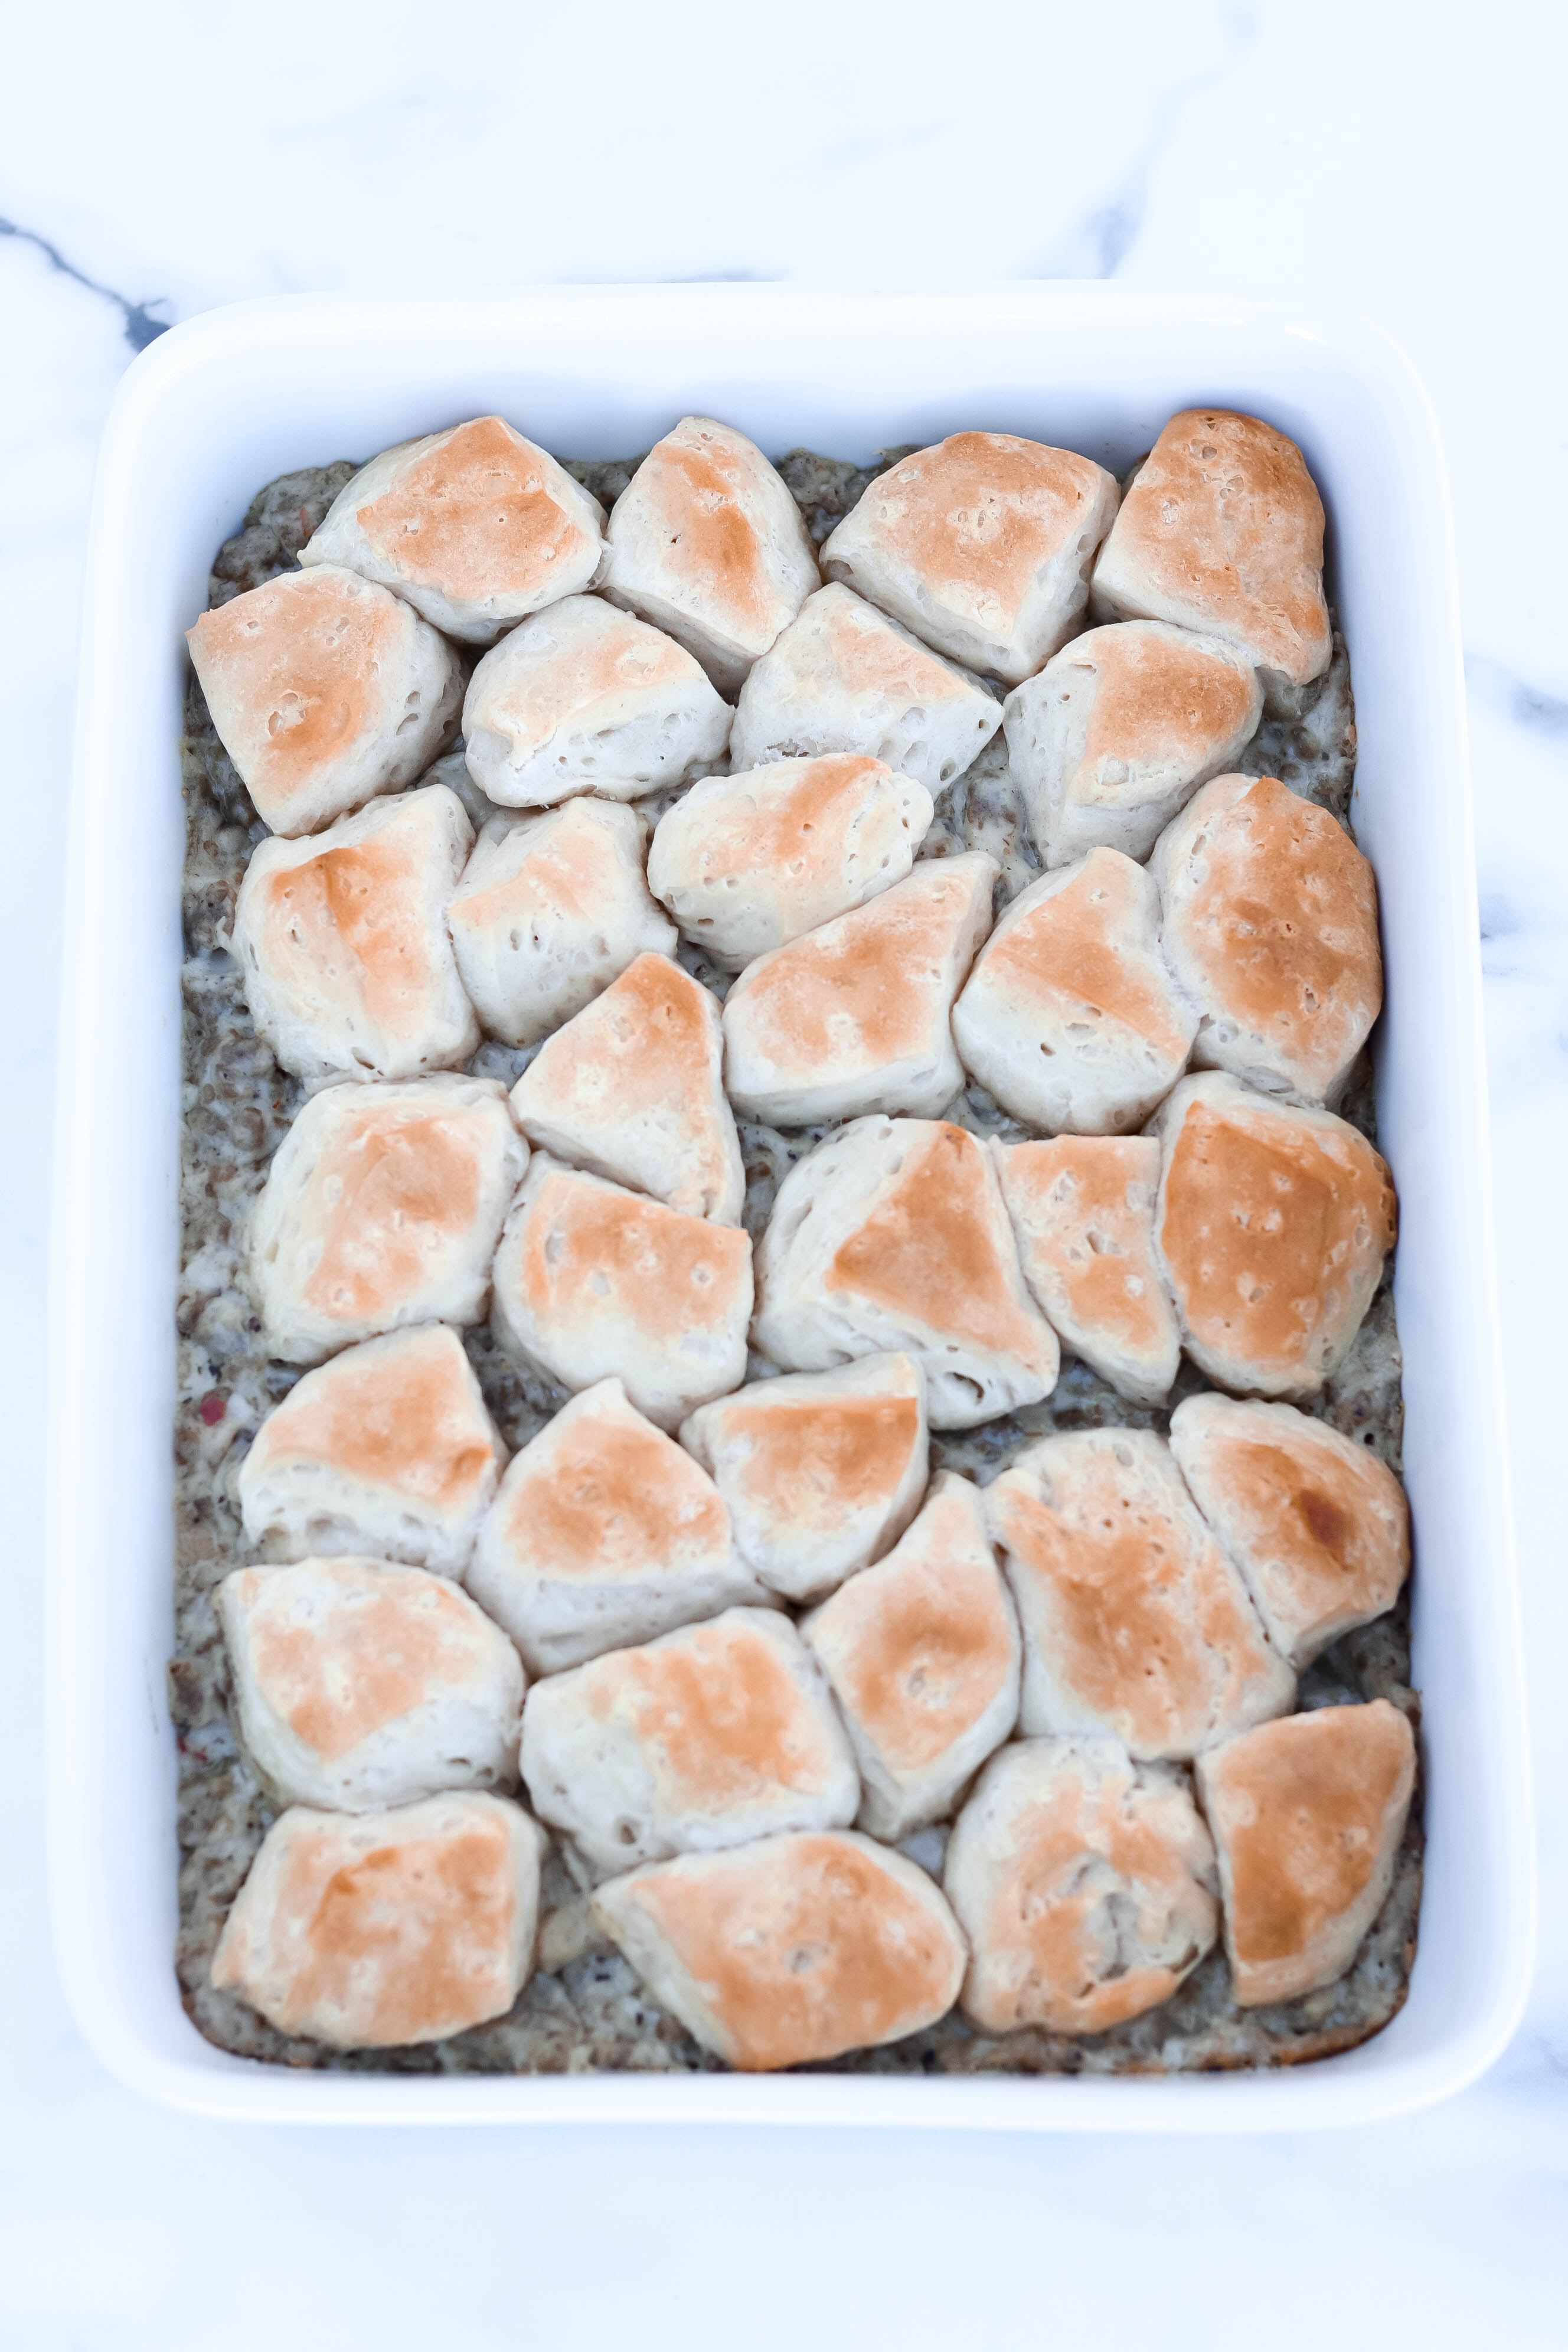 This Biscuits and Gravy Casserole